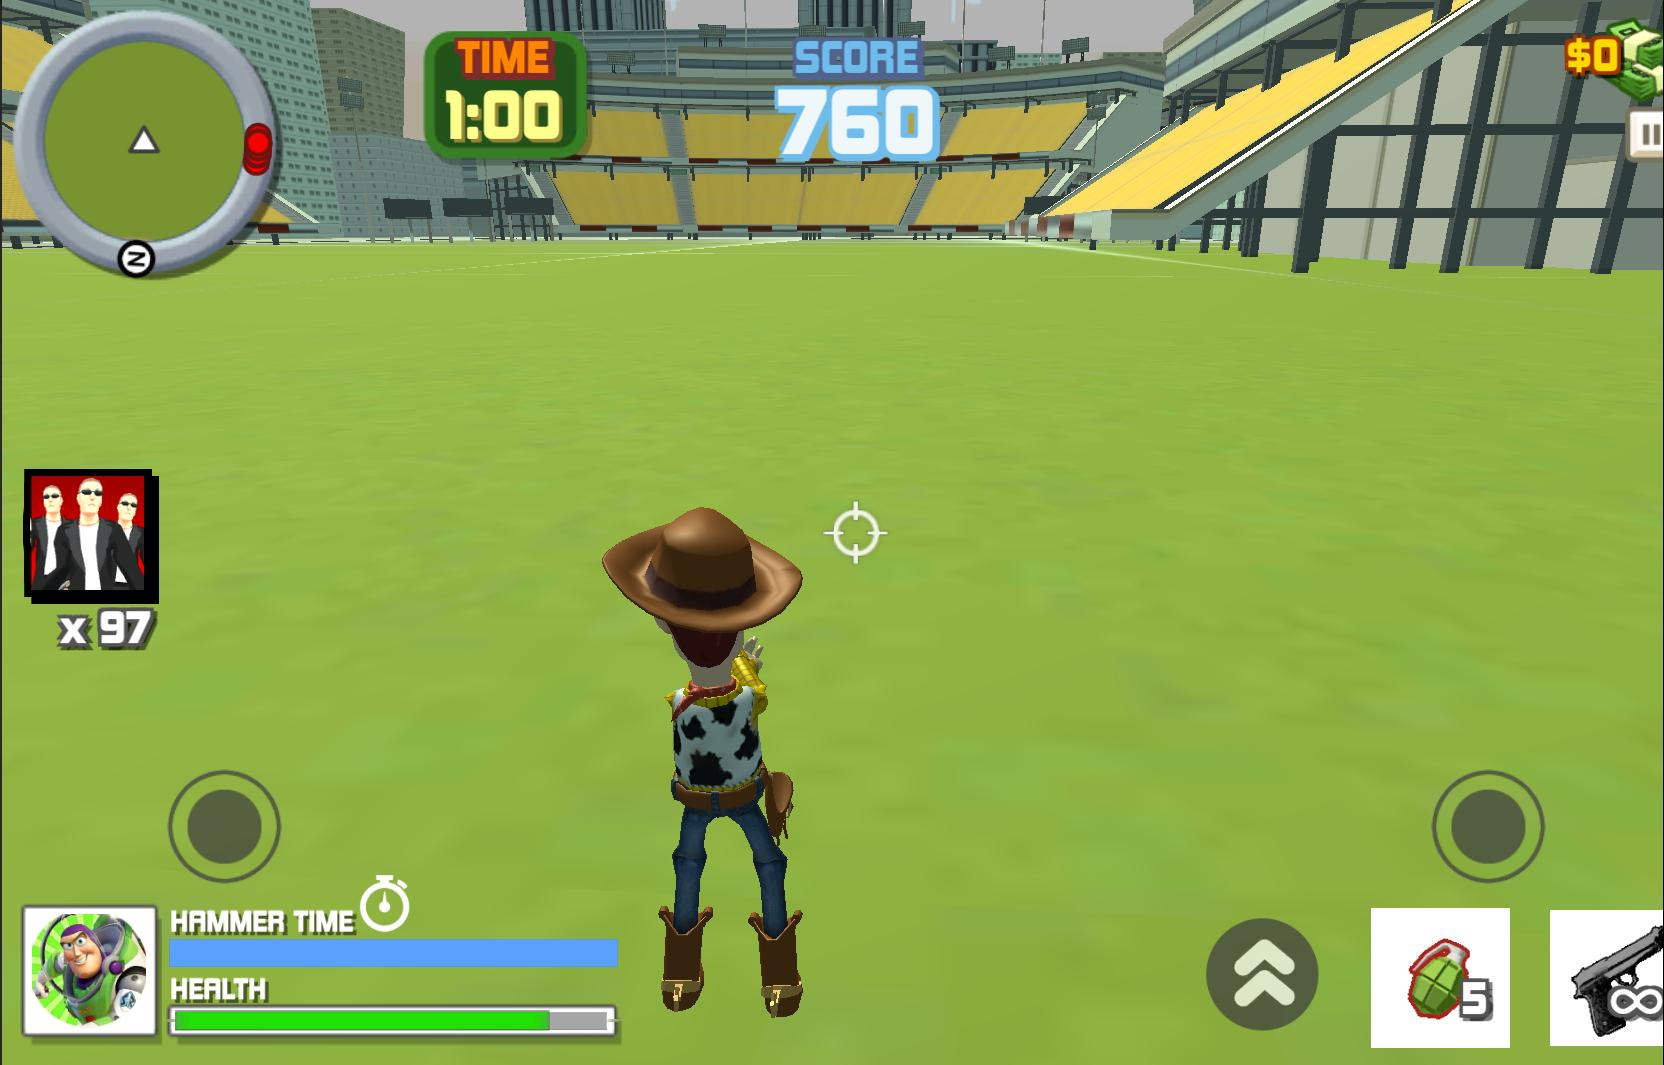 Woody Sherif : Toy Story action Game for Android - APK Download